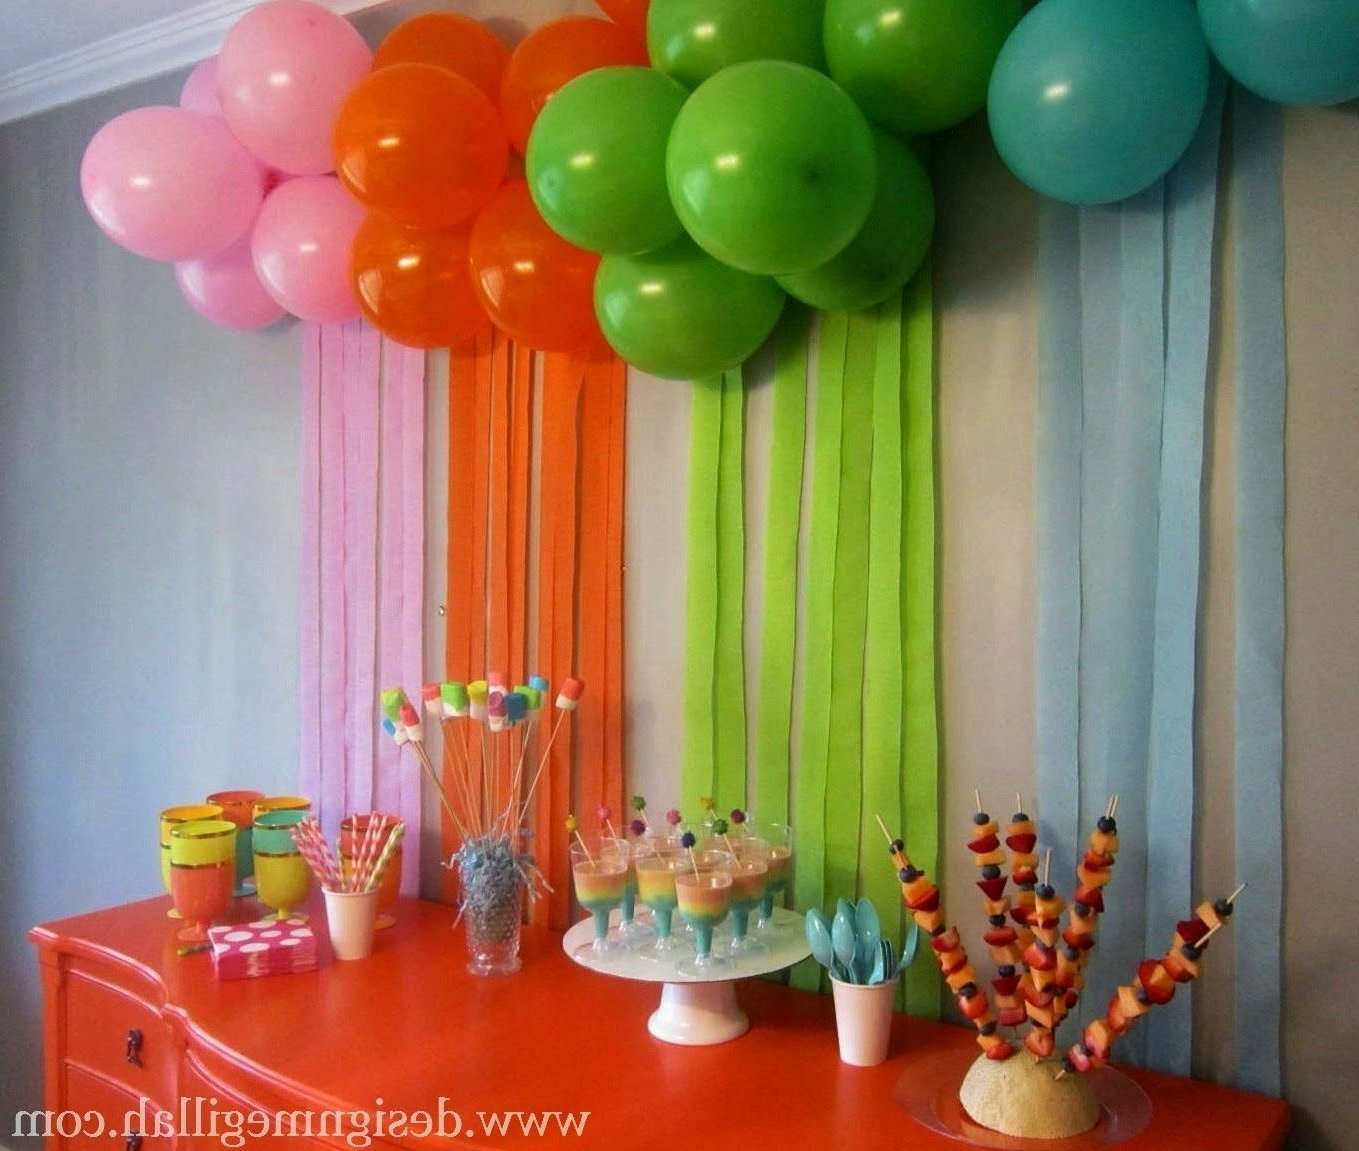 10 Gorgeous Ideas For A 3 Year Old Birthday Party Boy At